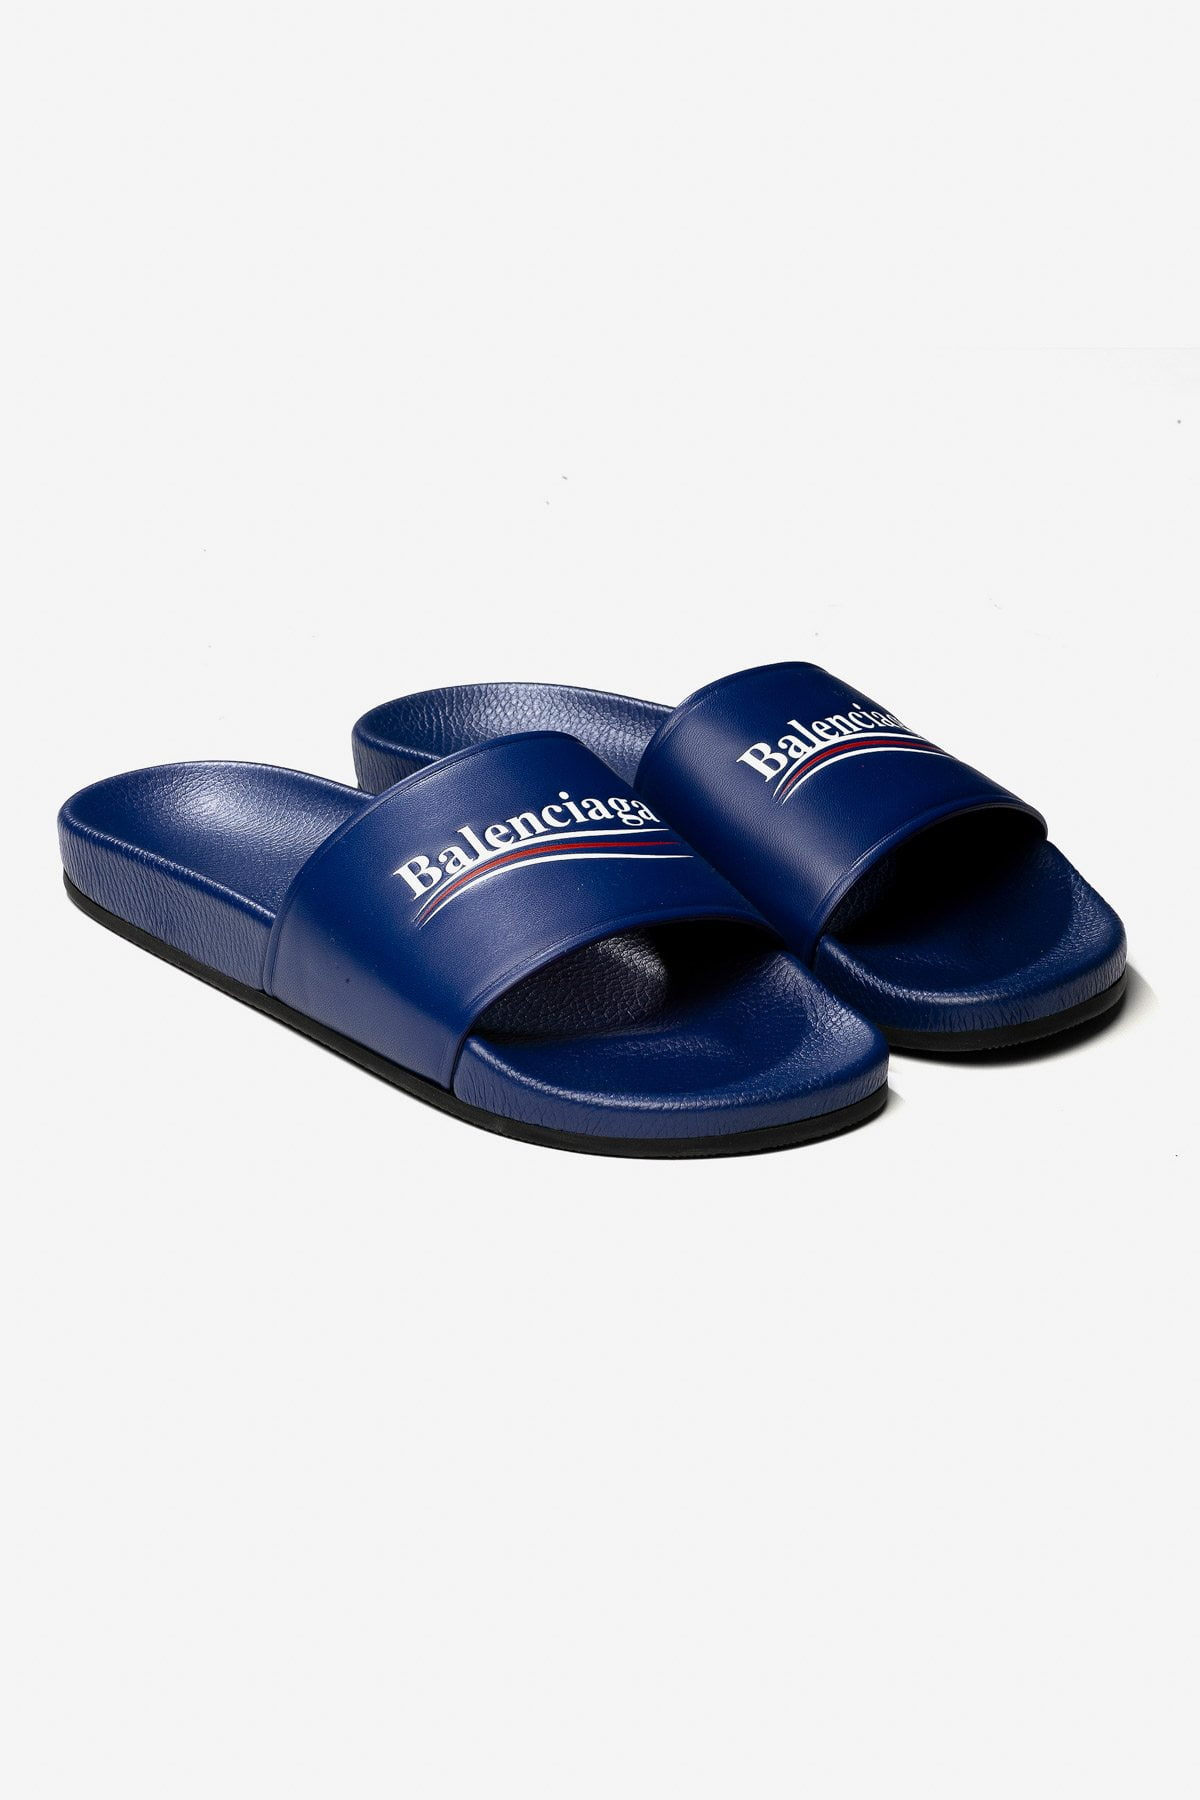 POLITICAL LOGO RUBBER SLIDE SANDALS